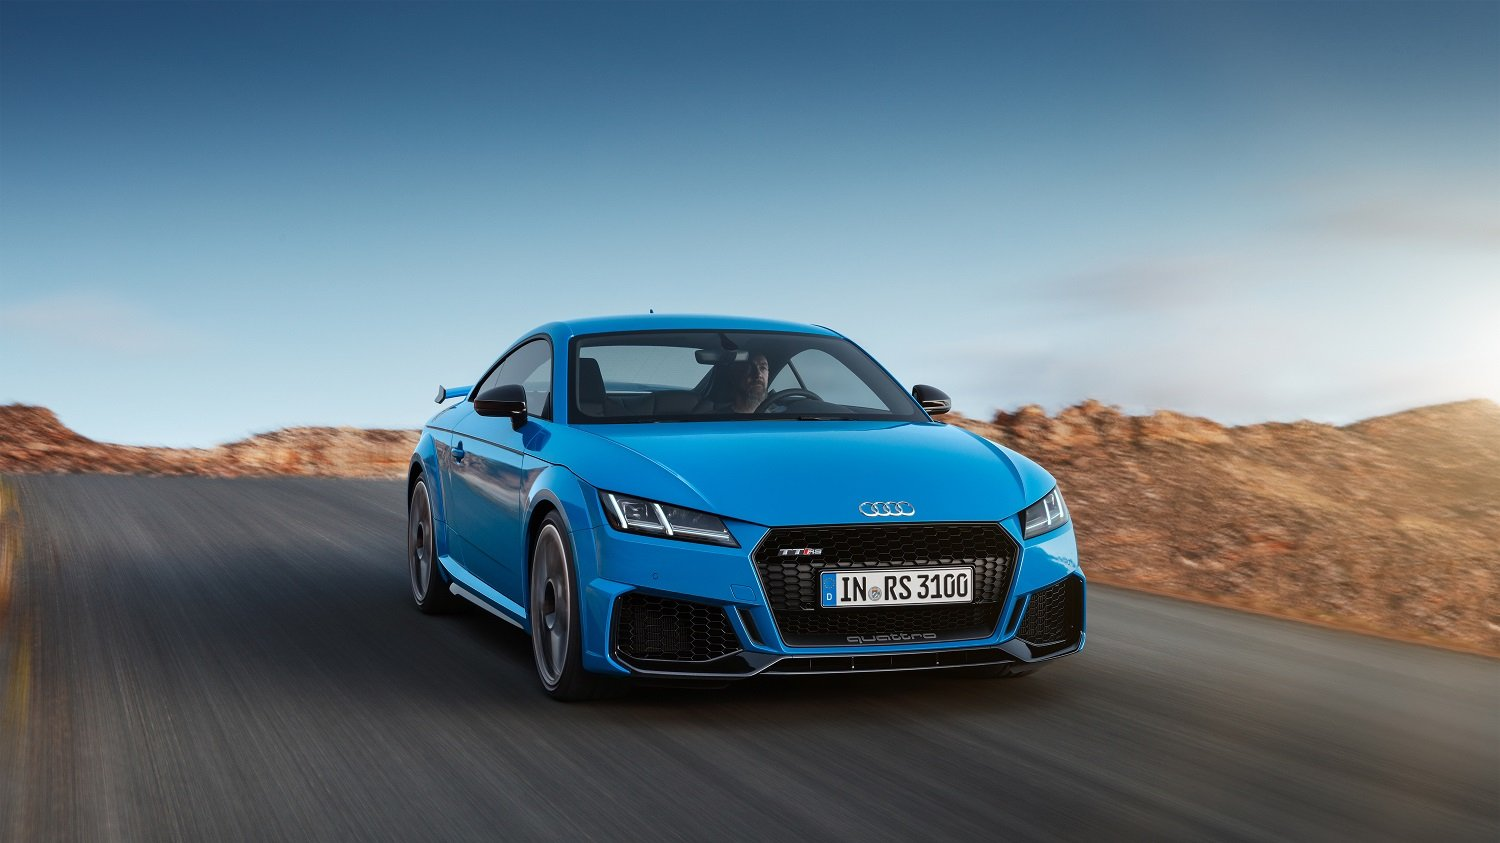 Super Car Performance Without The Price From New Audi Tt Rs Coupe